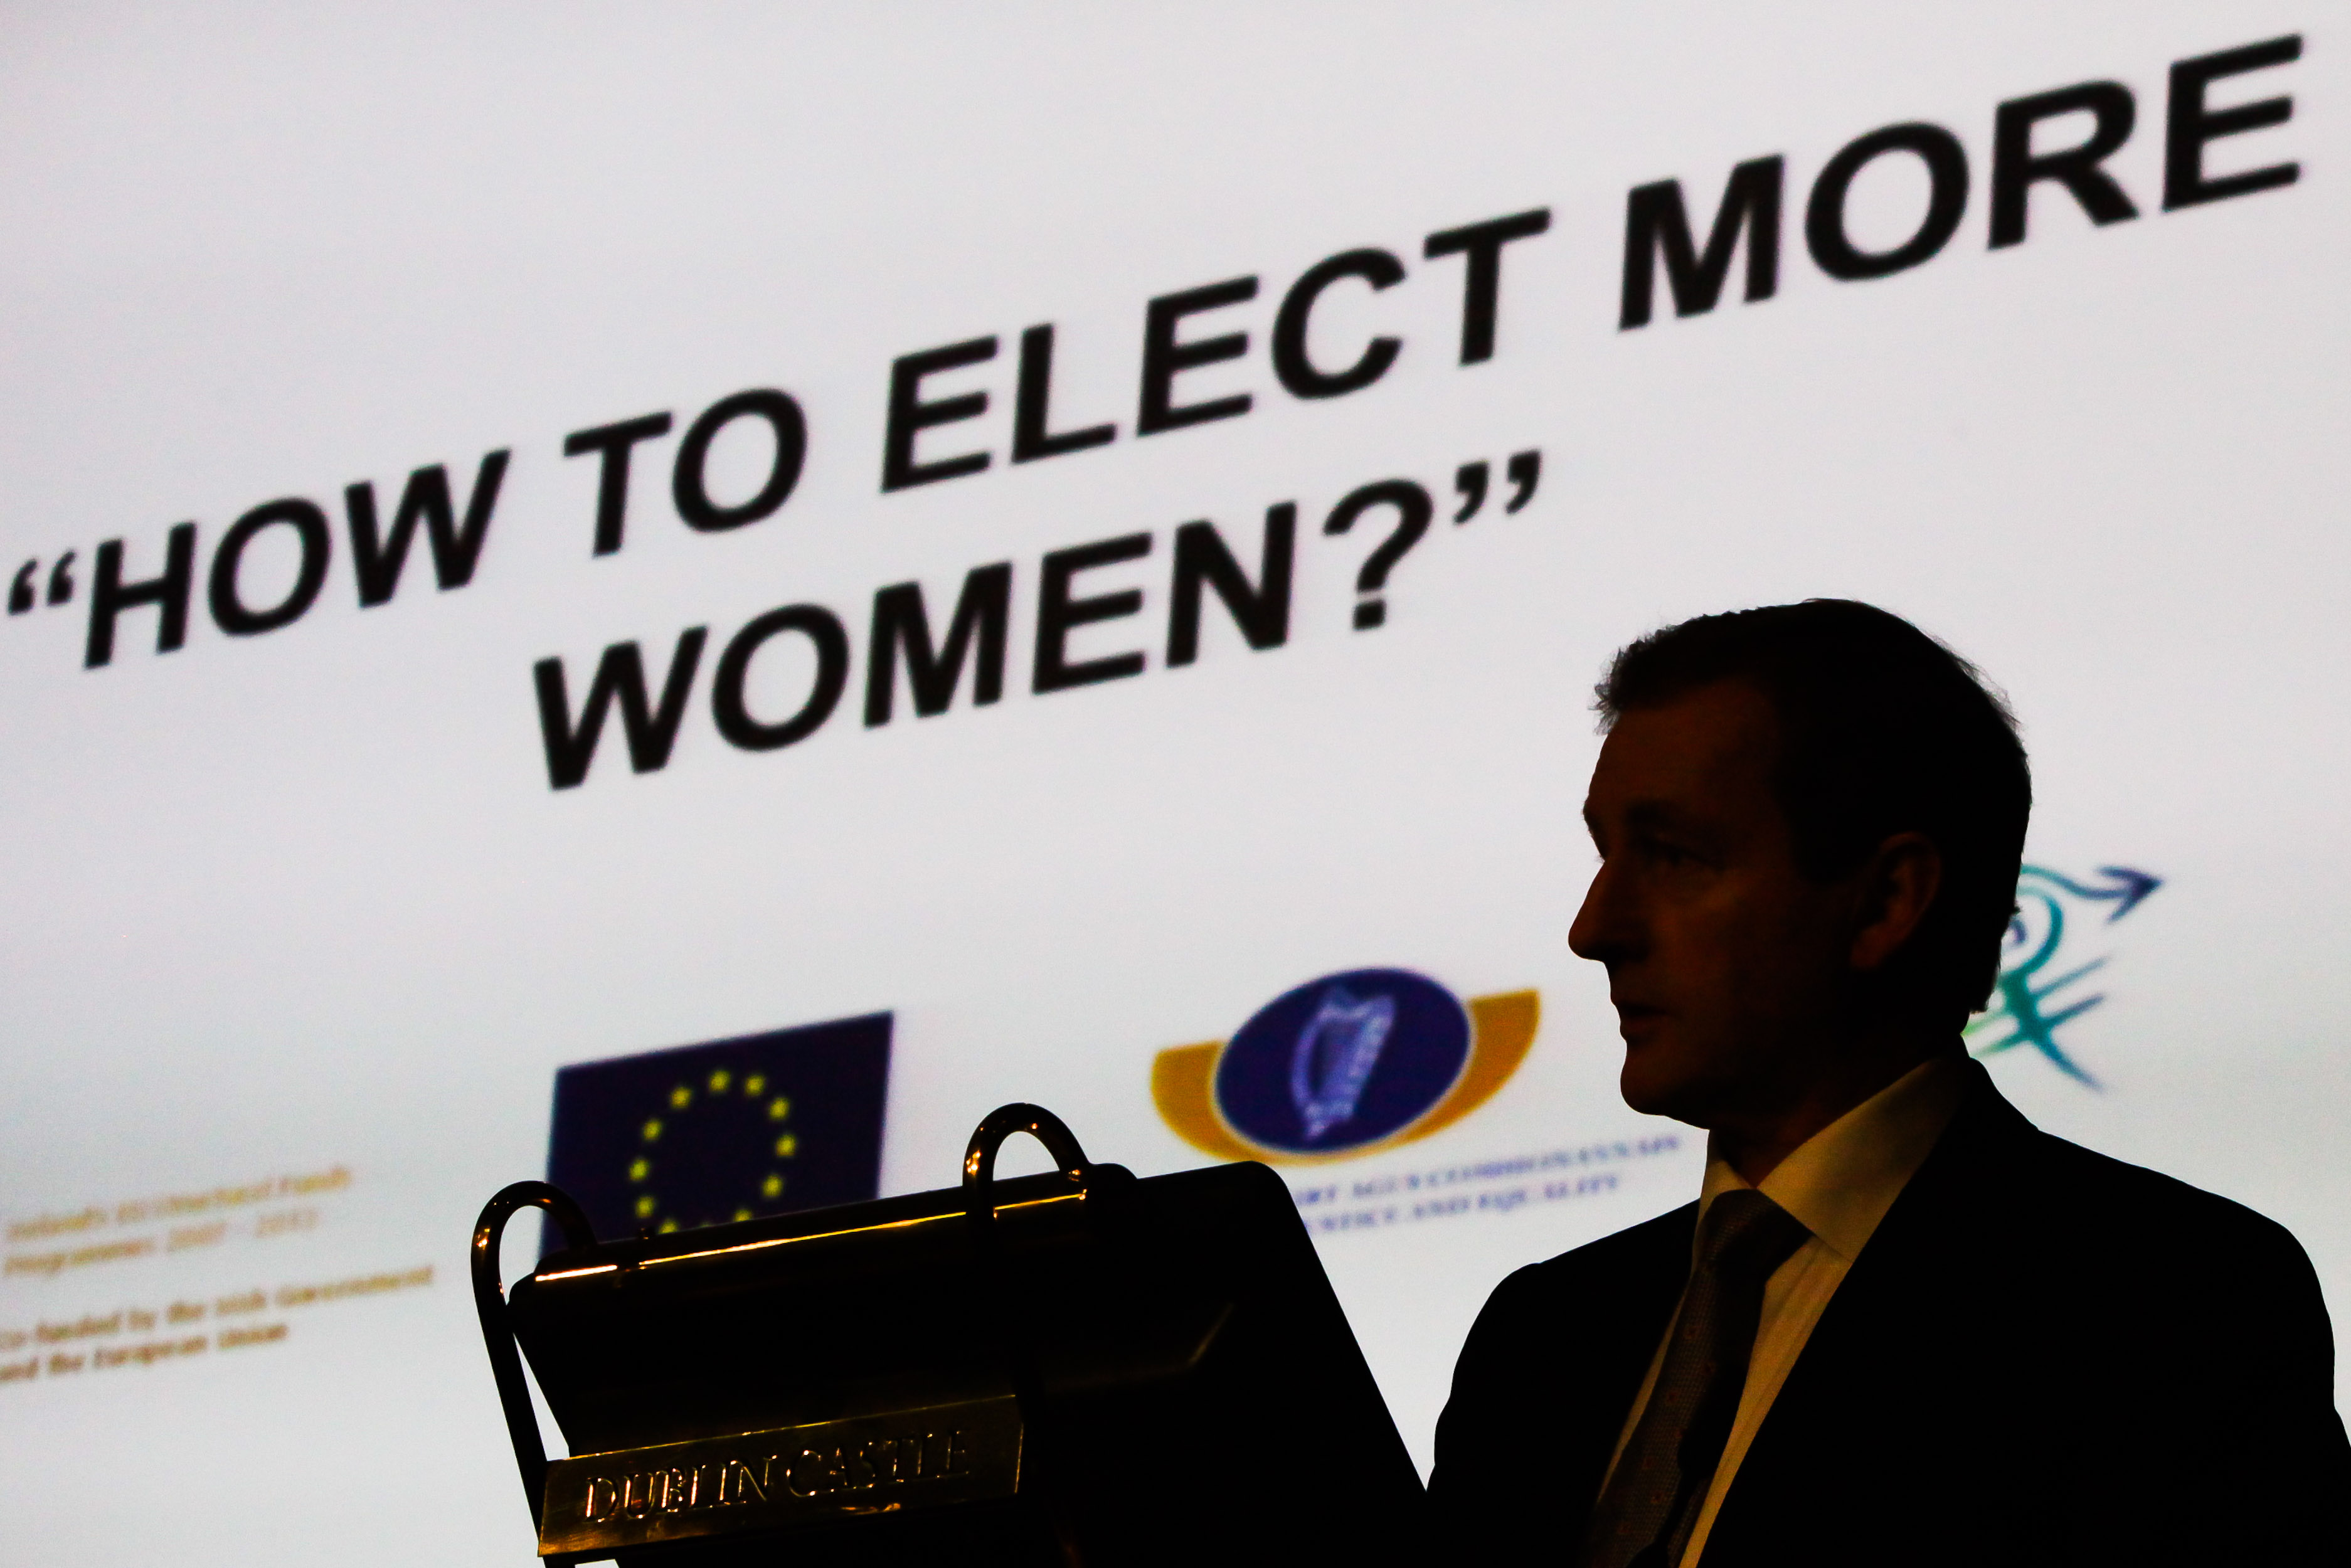 How_to_elect_more_women_conf_mx-4